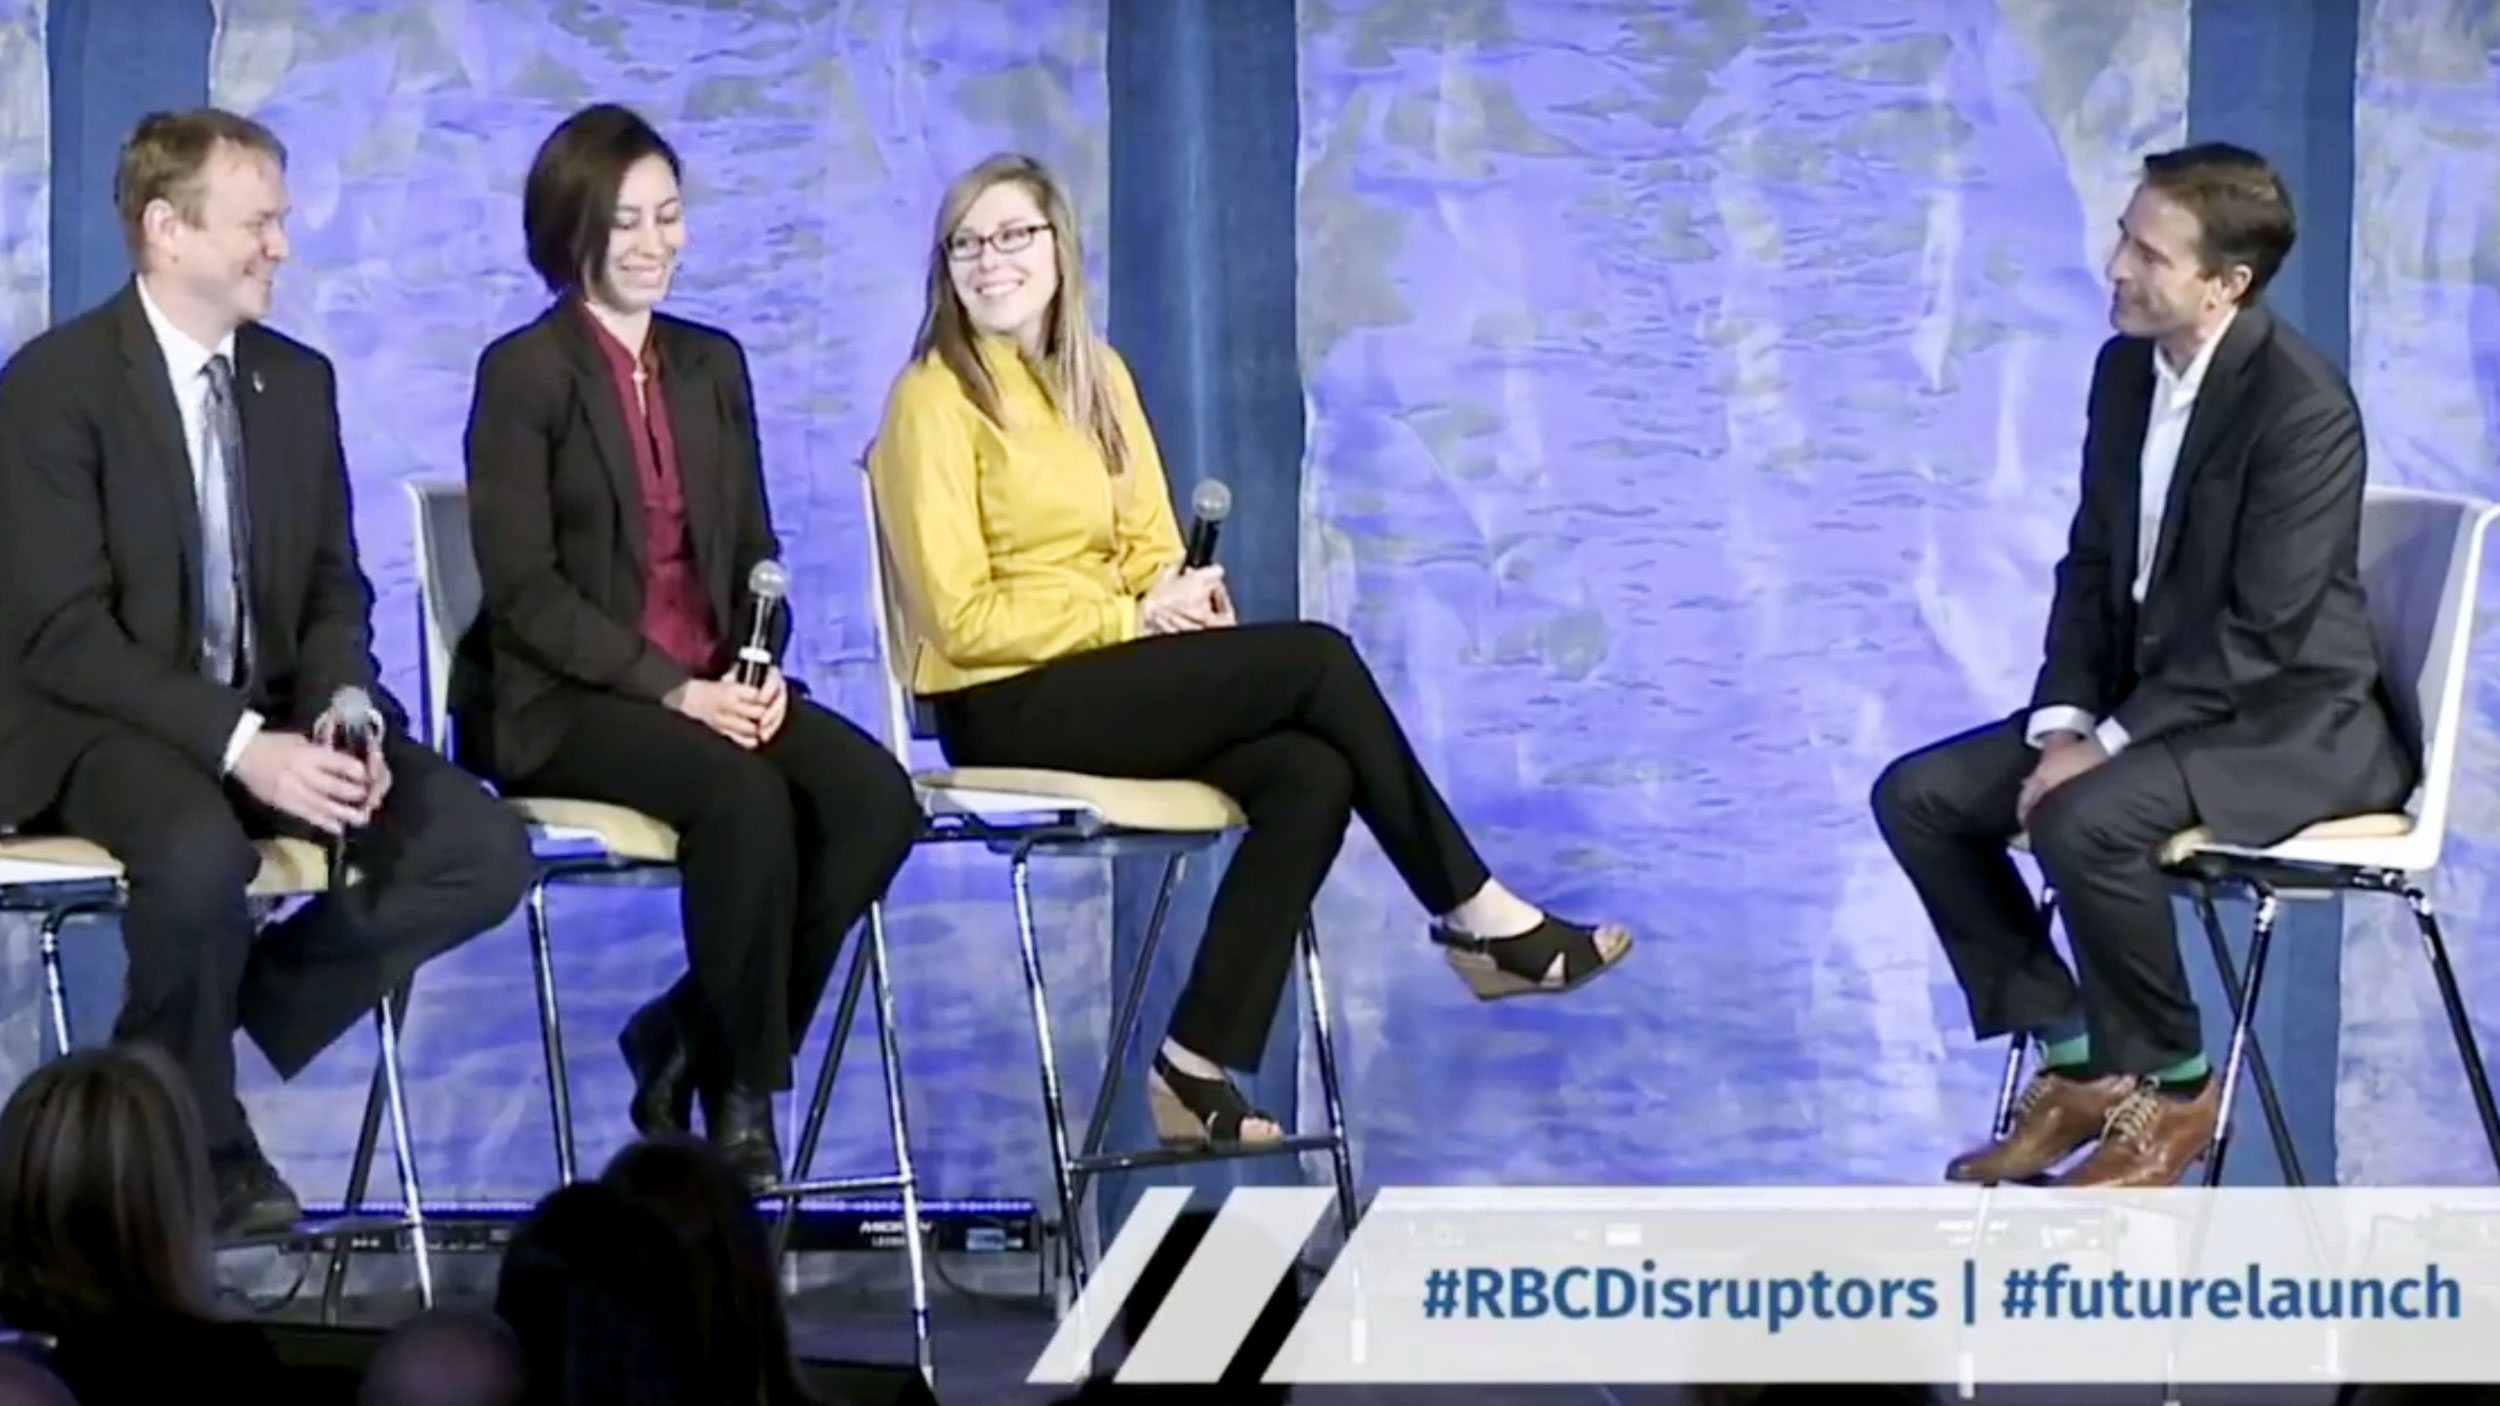 Evan, Leah and Amberley on stage with John Stackhouse with RBC graphic over